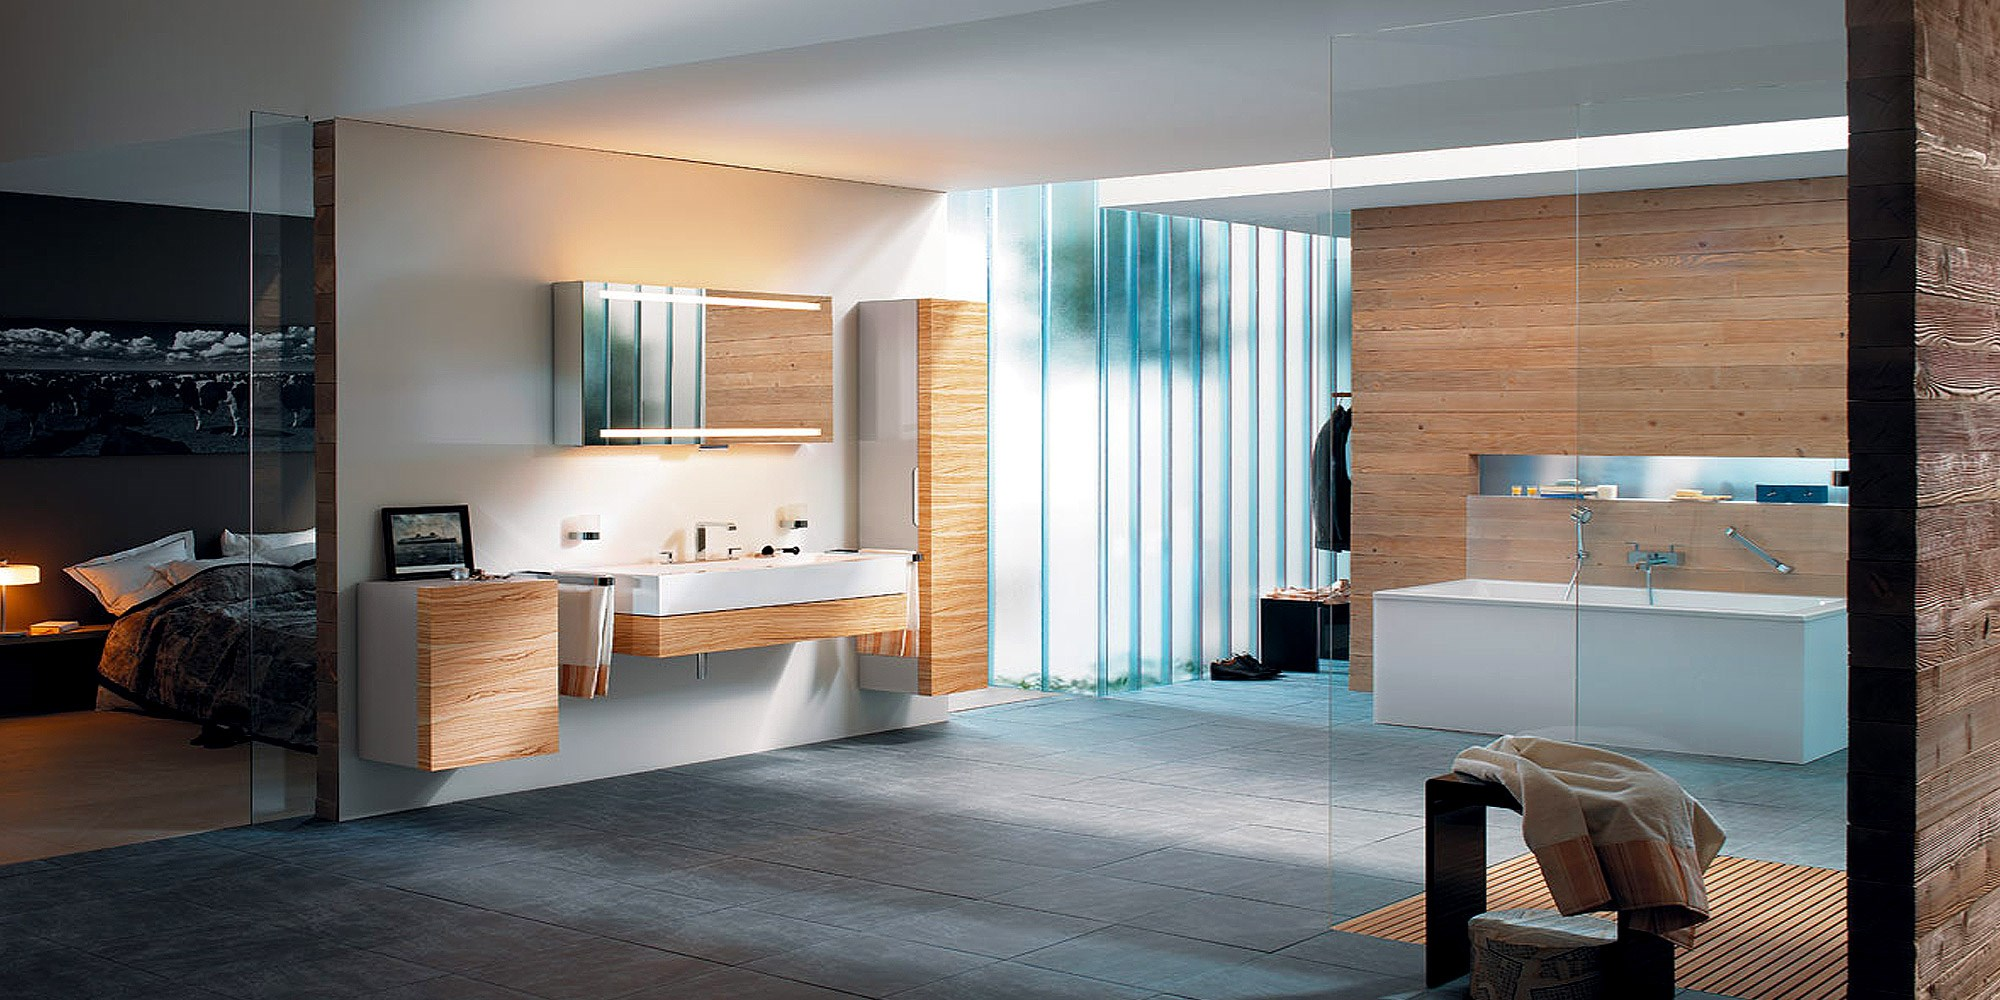 BEAUTIFUL BATHROOMS by Keuco